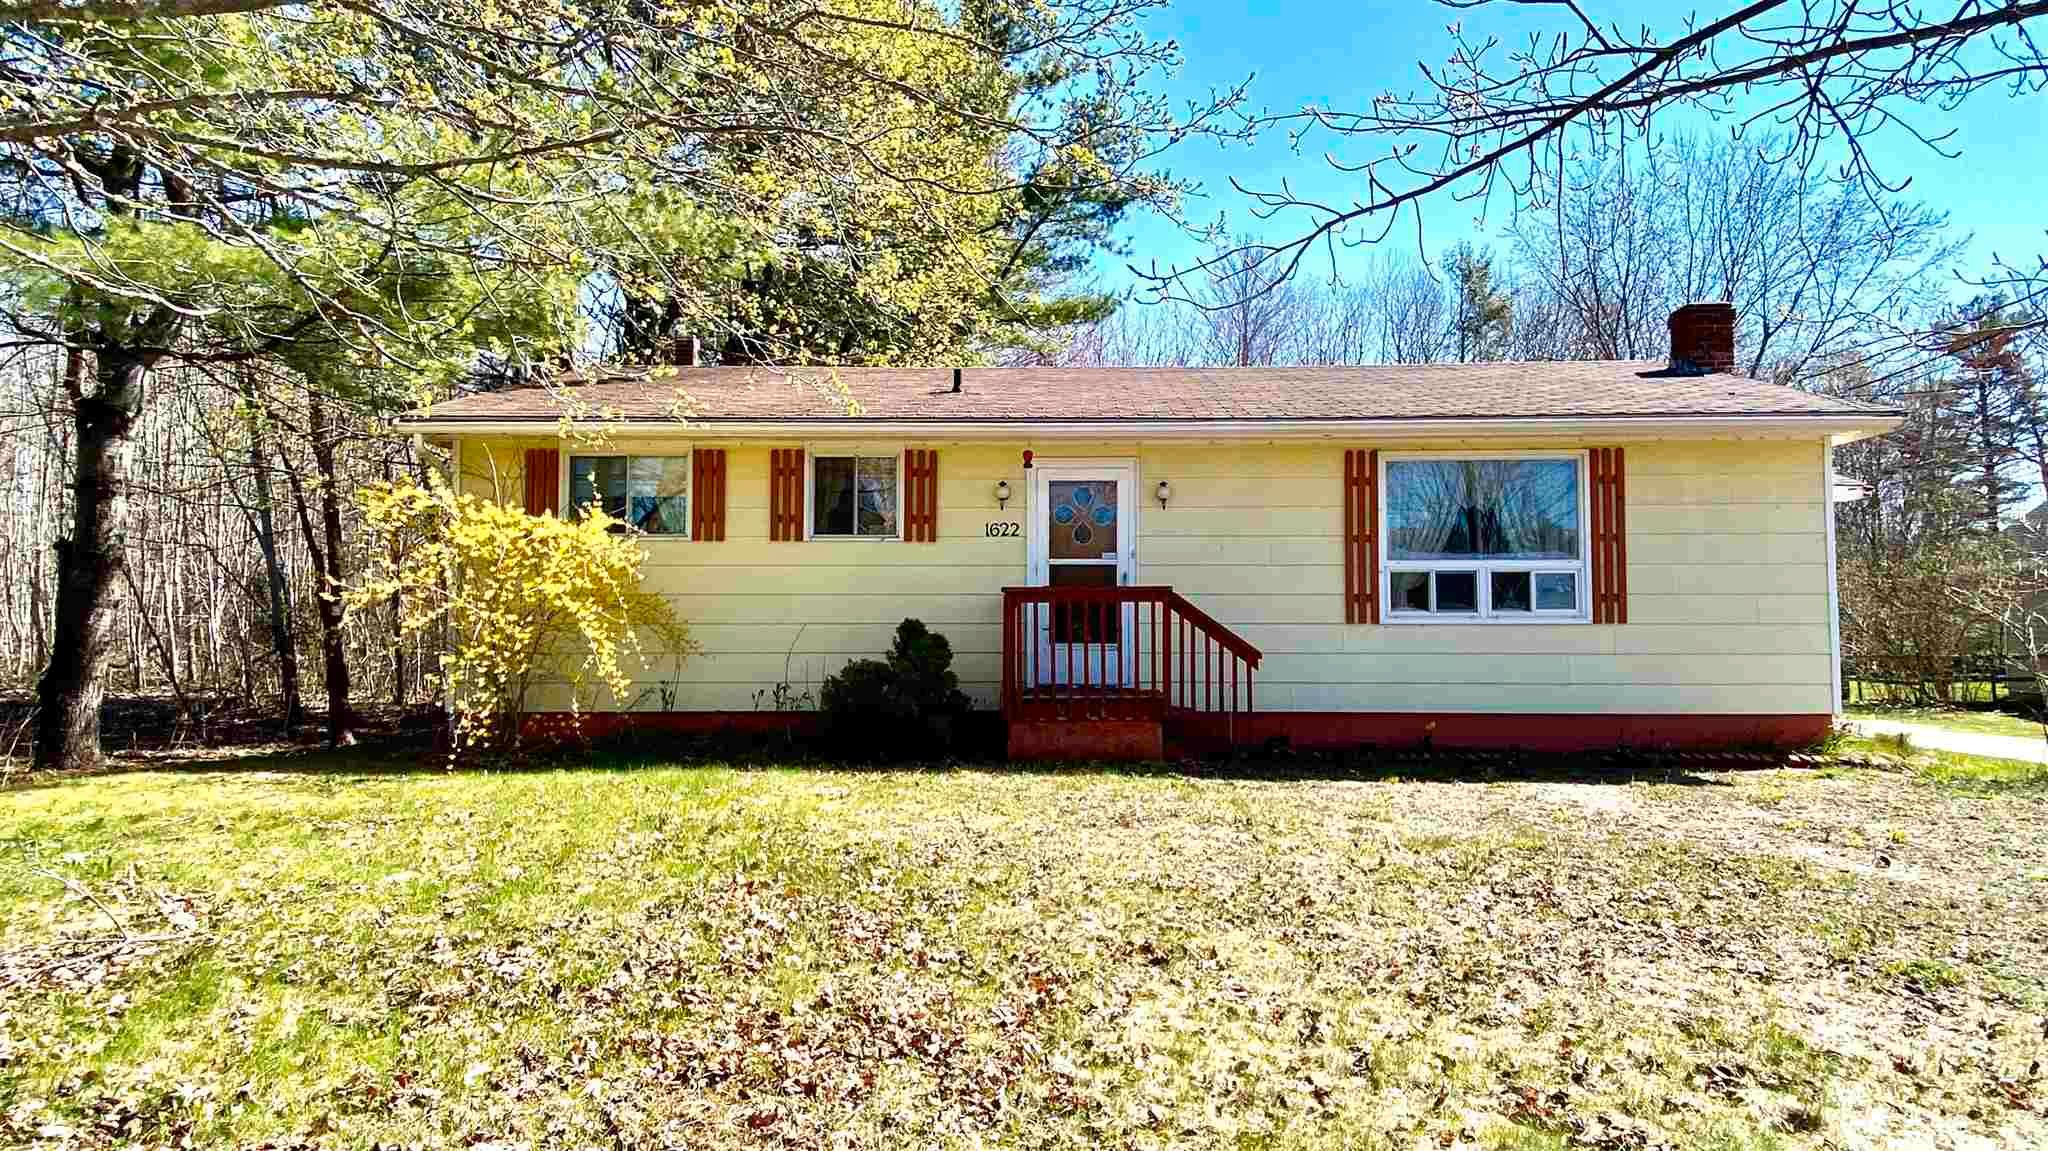 Main Photo: 1622 Highway 359 in Steam Mill: 404-Kings County Residential for sale (Annapolis Valley)  : MLS®# 202110346